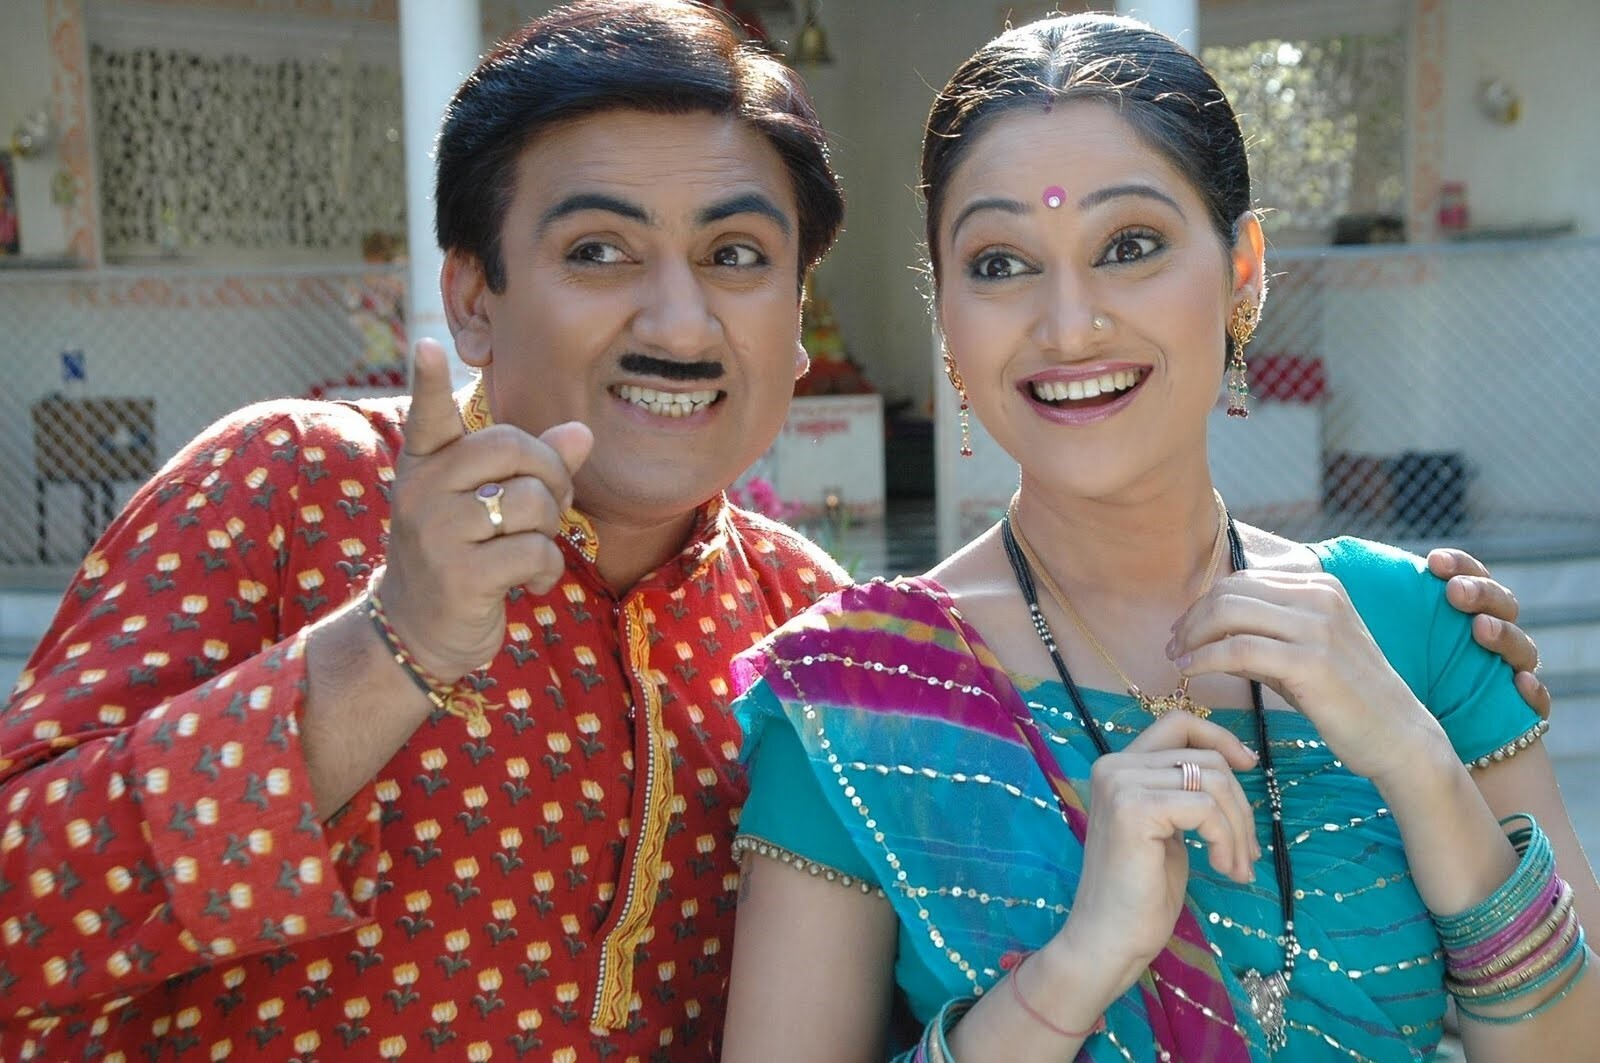 Tarak mehta ka oolta chasma hd wallpapers images pictures photos.